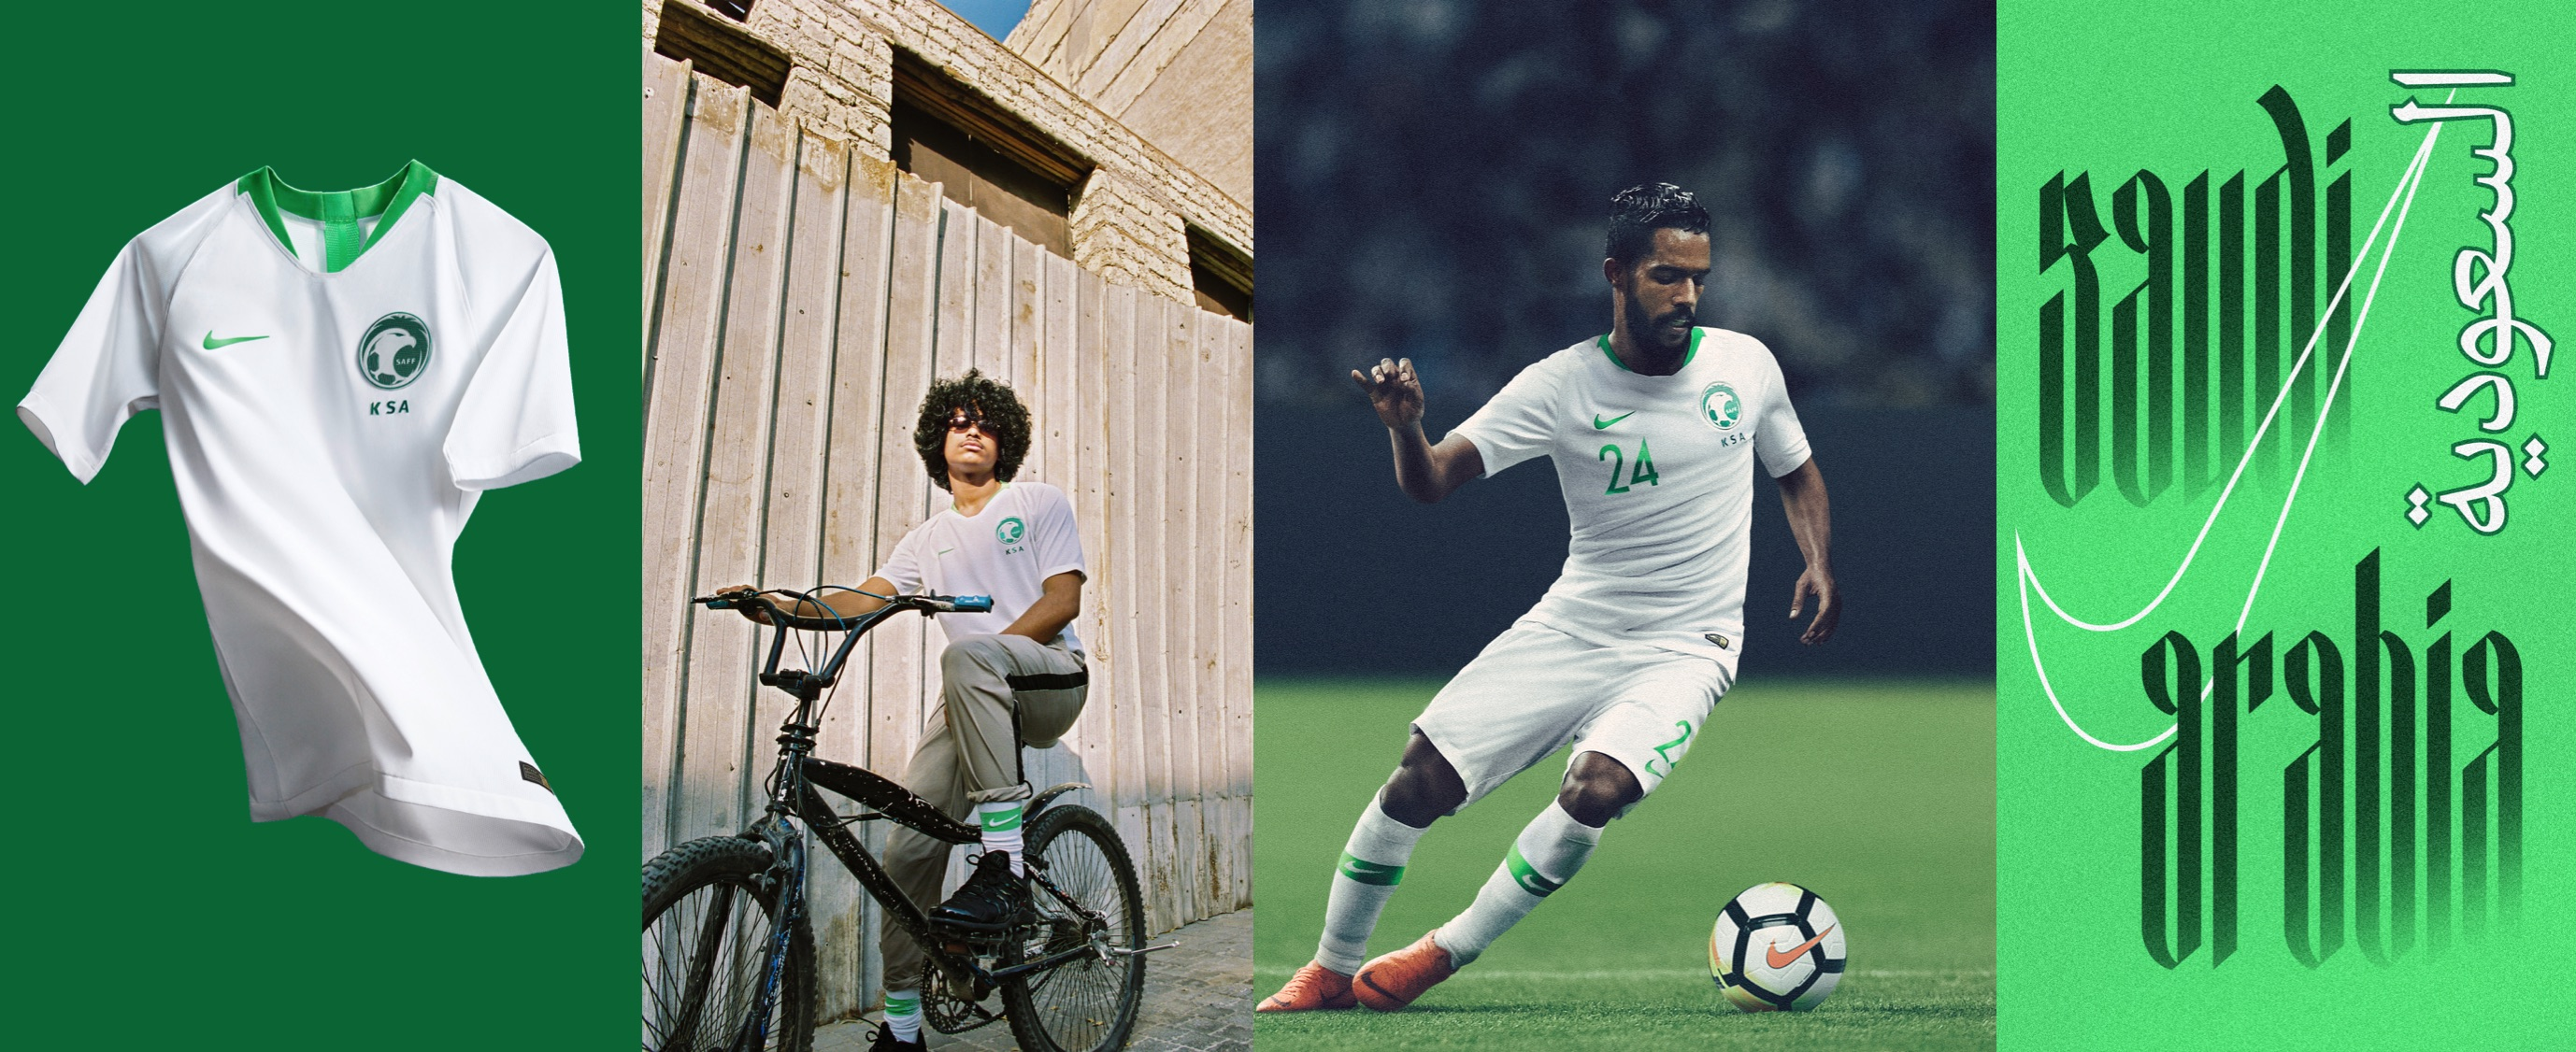 new products 793a0 e3d3a SAUDI NATIONAL TEAM COLLECTION | Nike